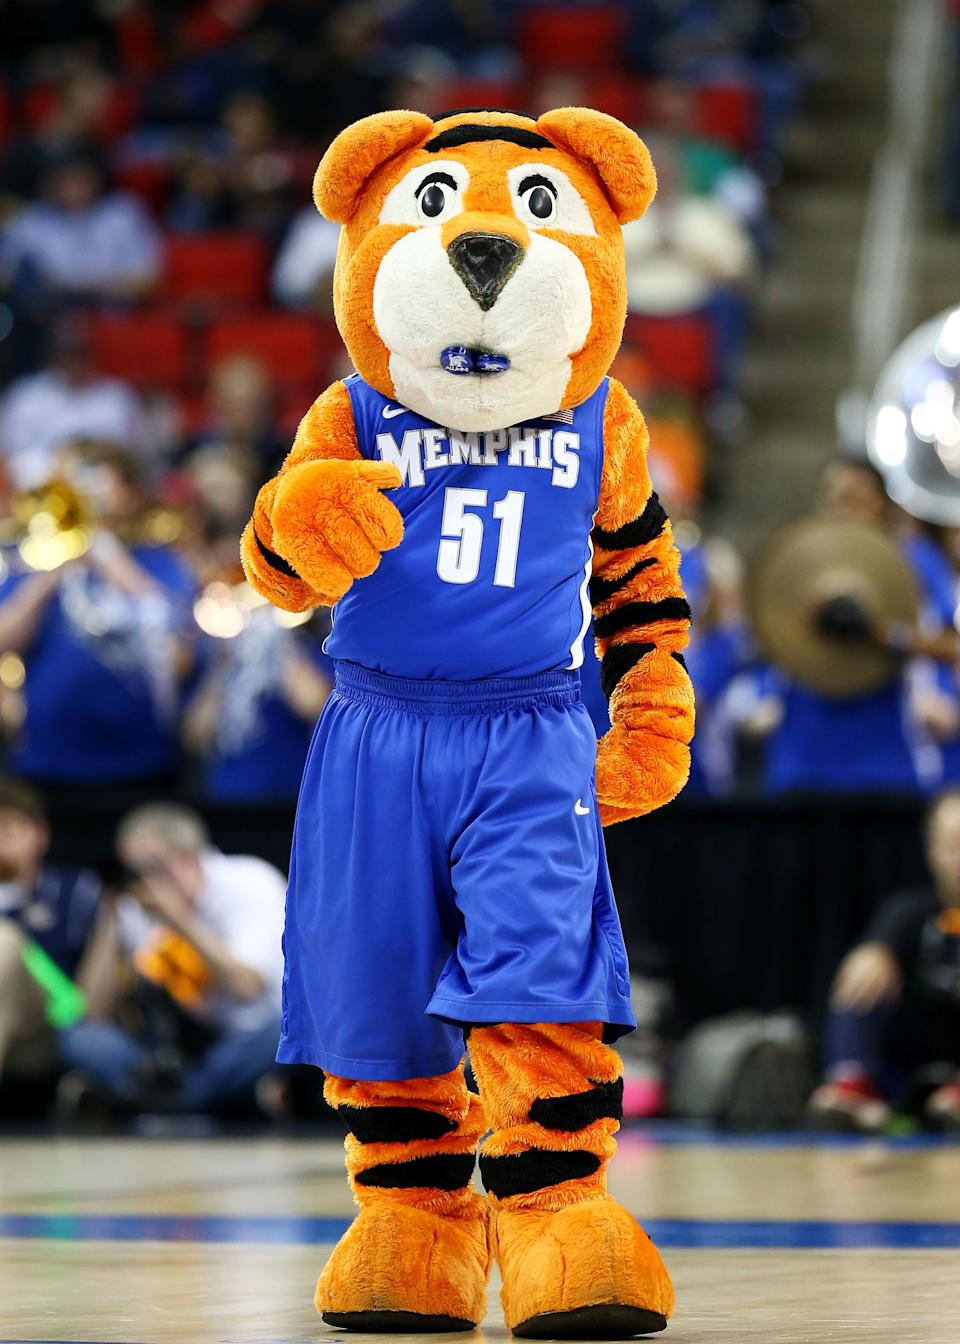 RALEIGH, NC - MARCH 21:  Memphis Tigers mascot, Pouncer, performs in the first half against the George Washington Colonials during the Second Round of the 2014 NCAA Basketball Tournament at PNC Arena on March 21, 2014 in Raleigh, North Carolina.  (Photo by Streeter Lecka/Getty Images)